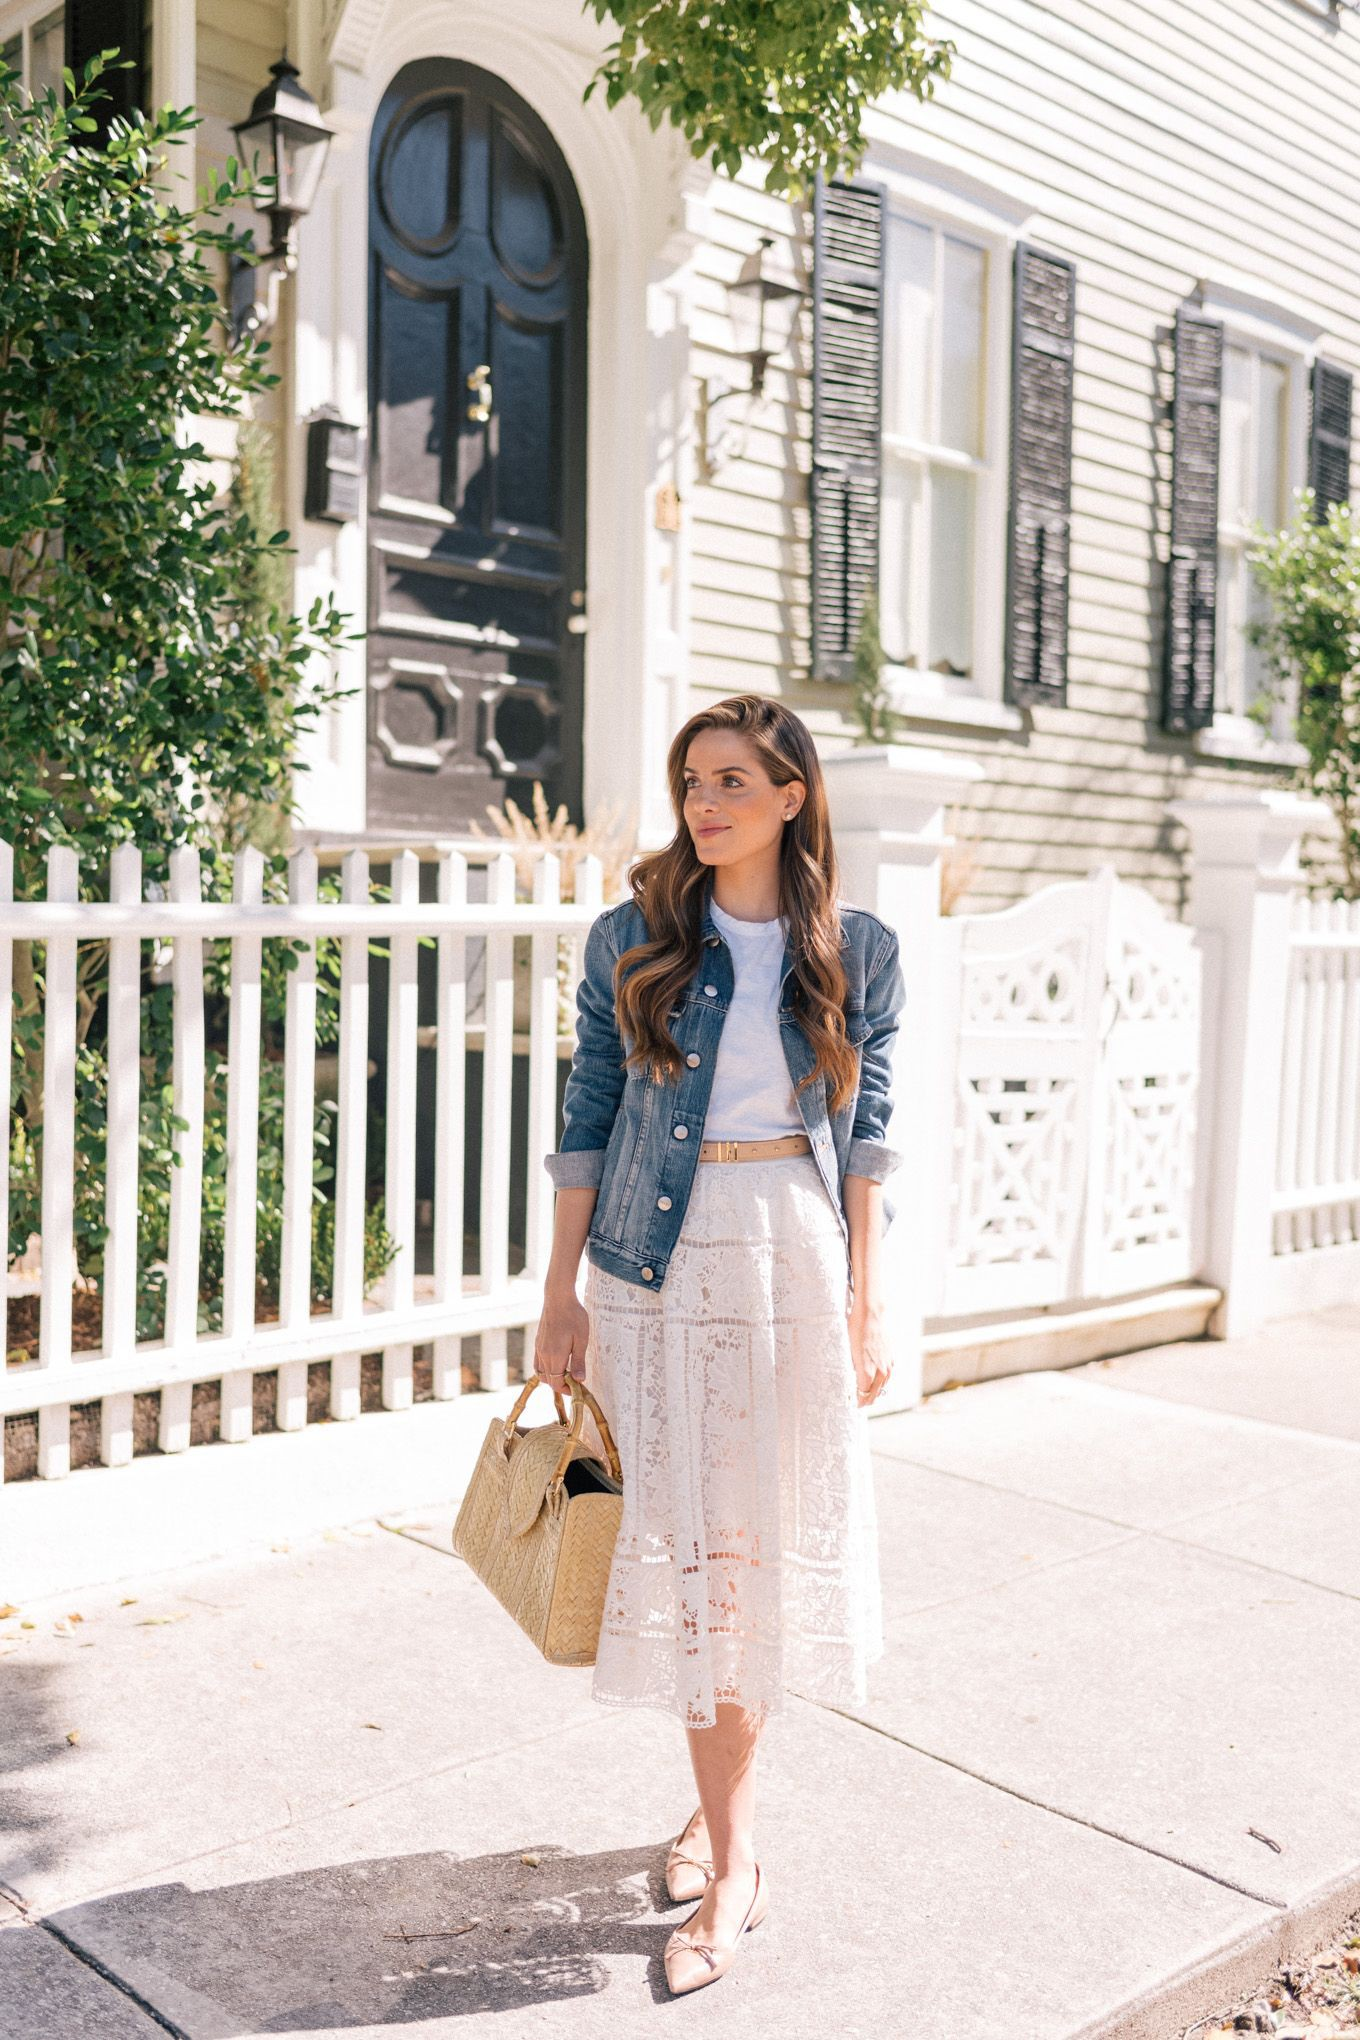 White outfit instagram with denim skirt, jean jacket, jacket